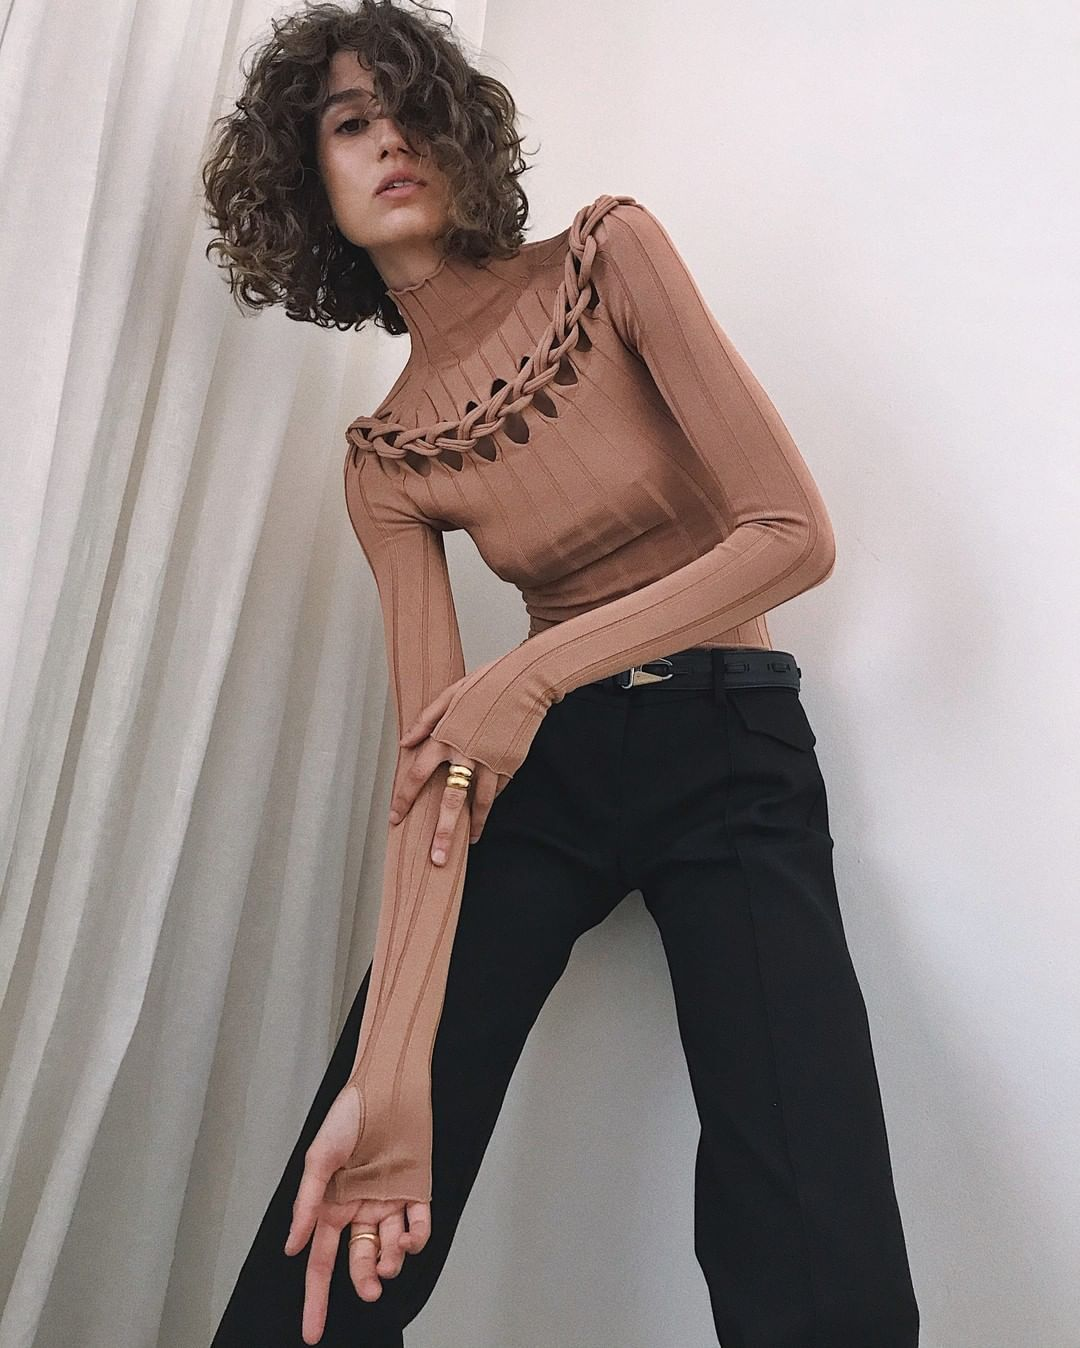 Pin on 2019 AW TRENDS